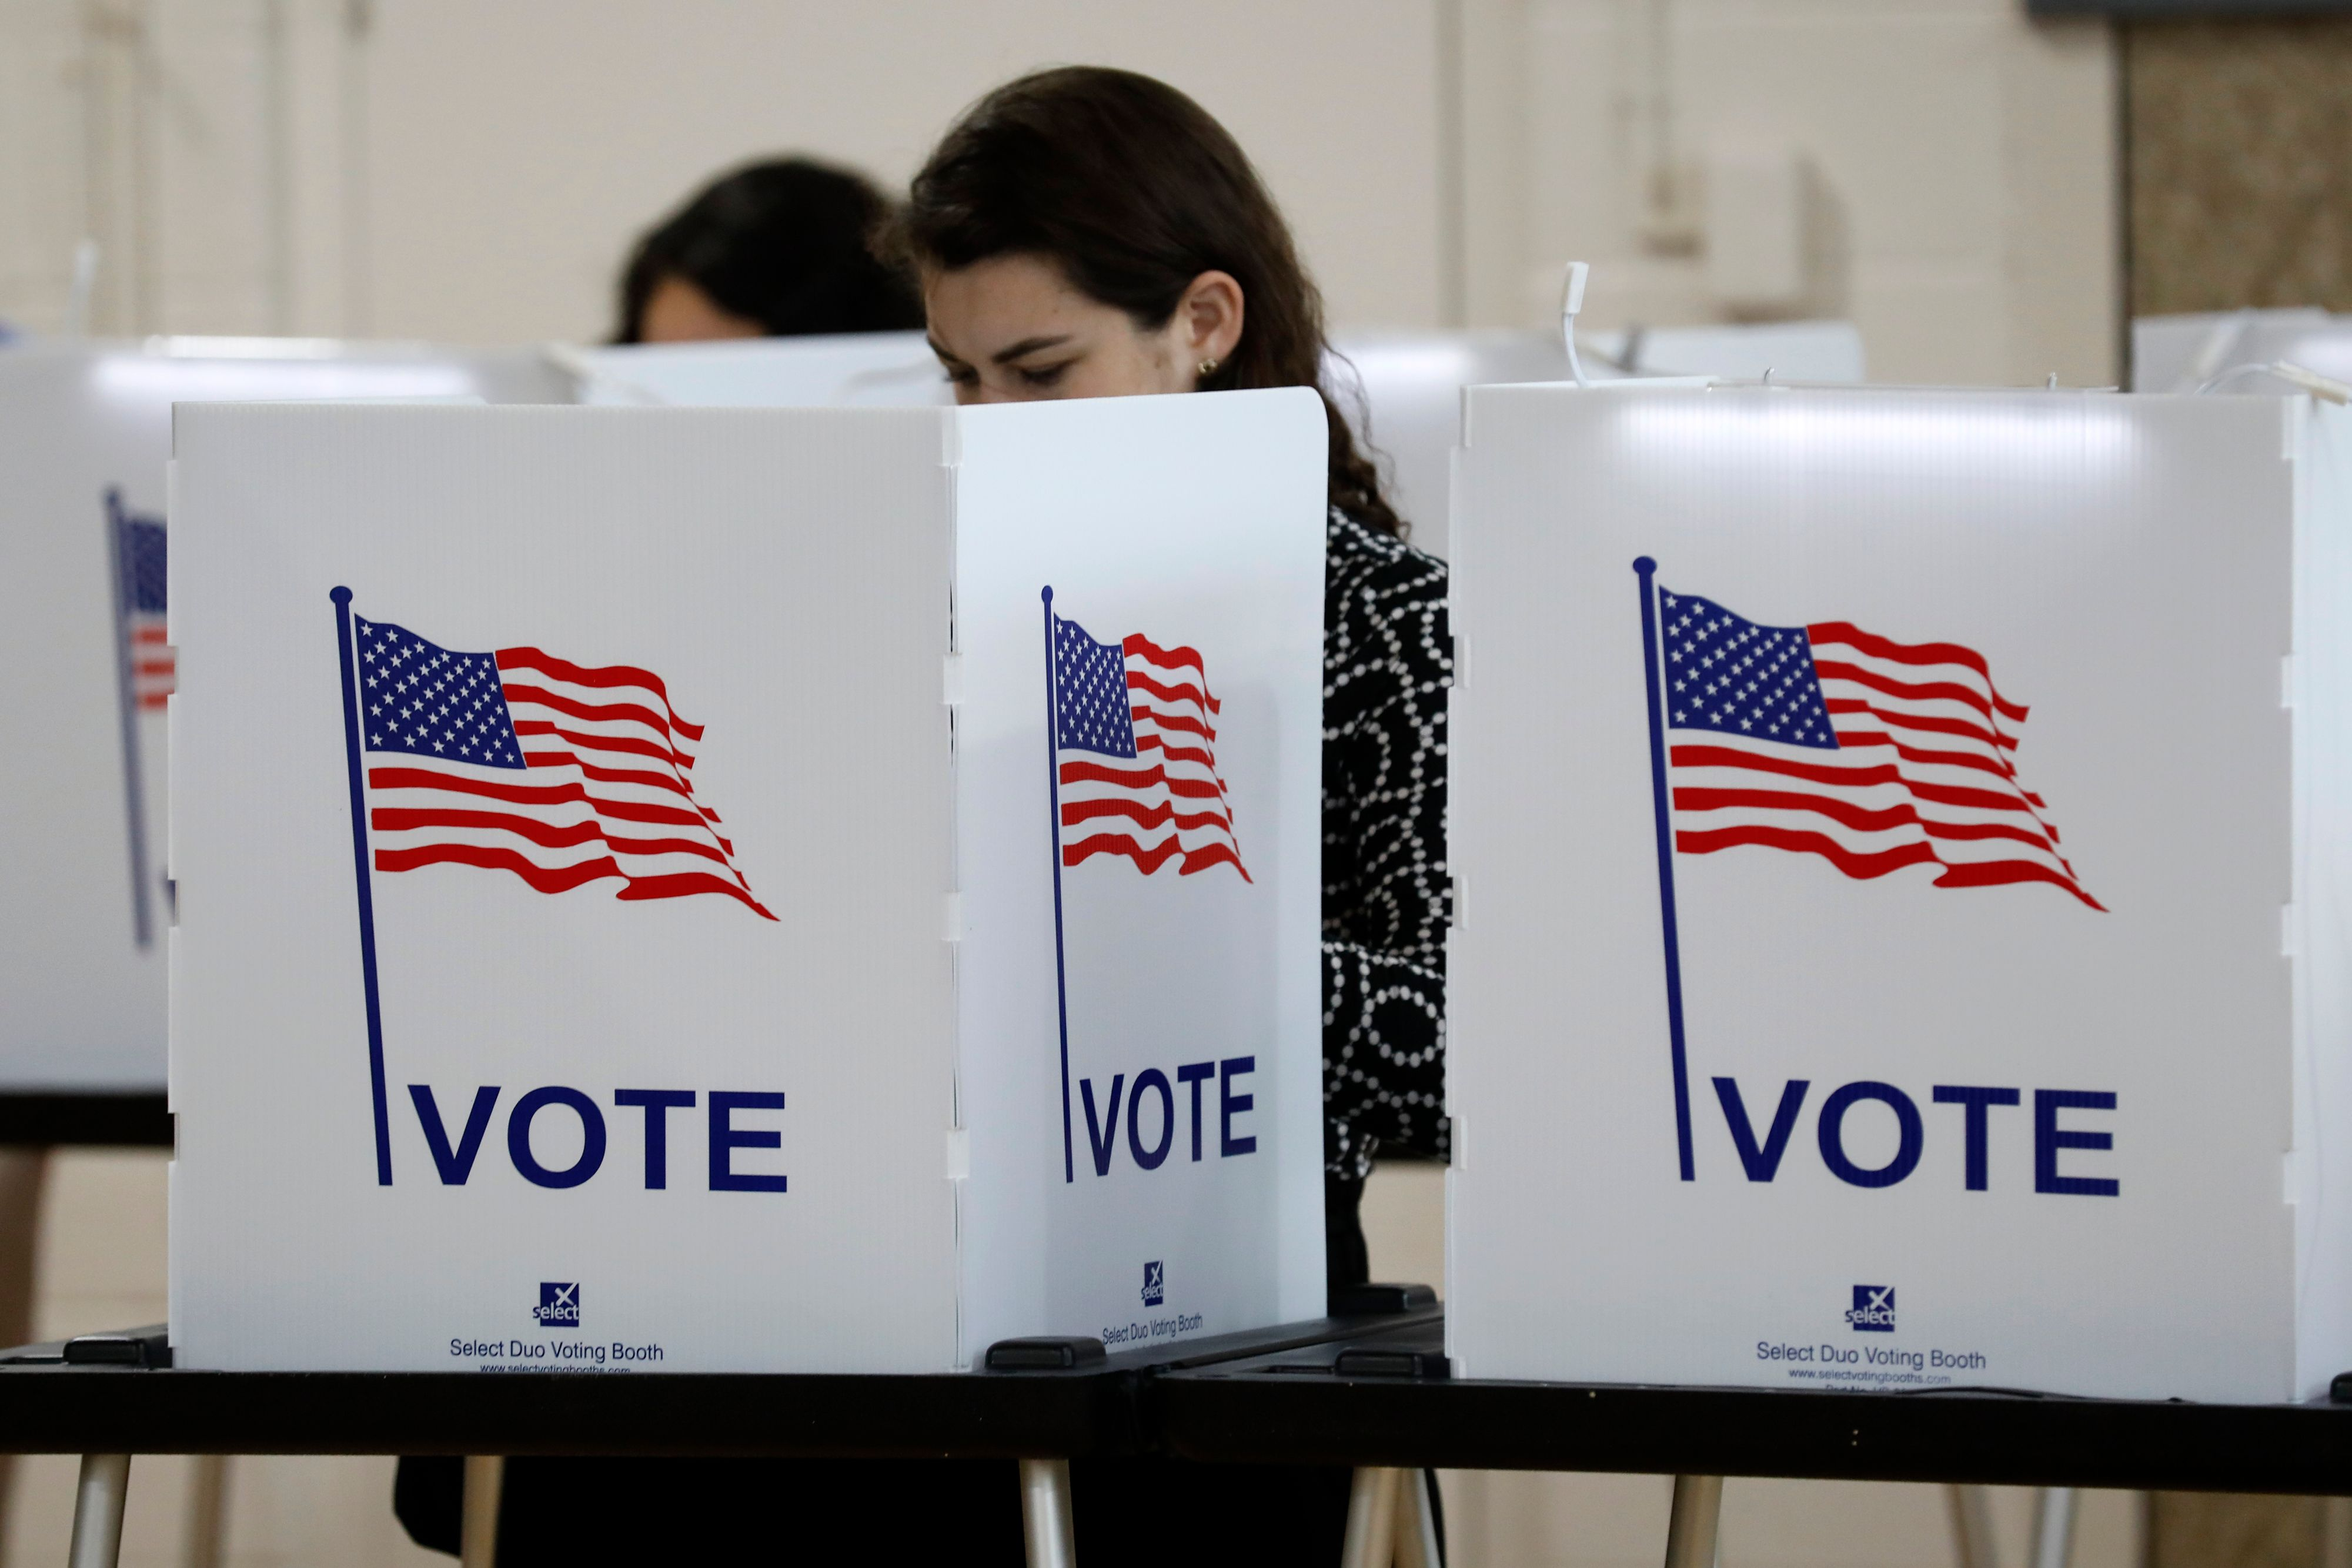 Are Americans too dependent on political polls?